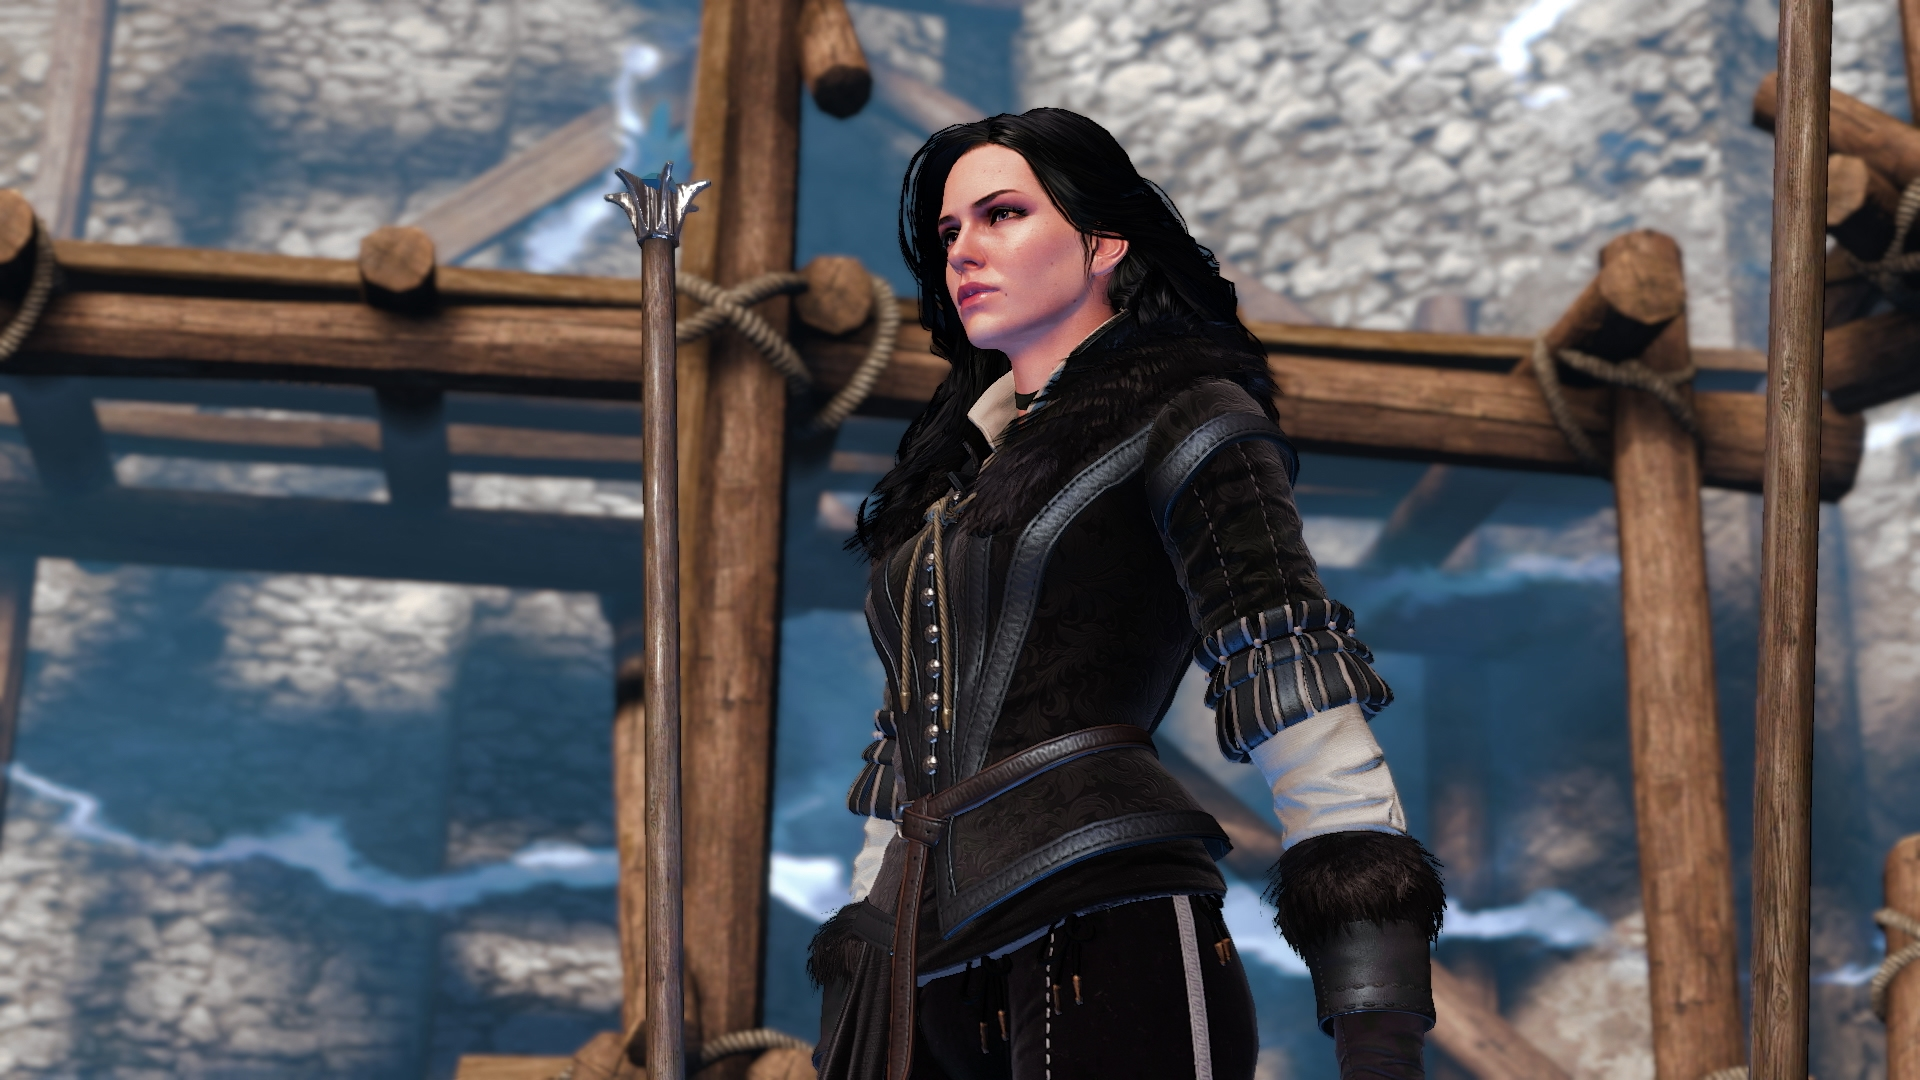 The witcher 3 suzy exploited video